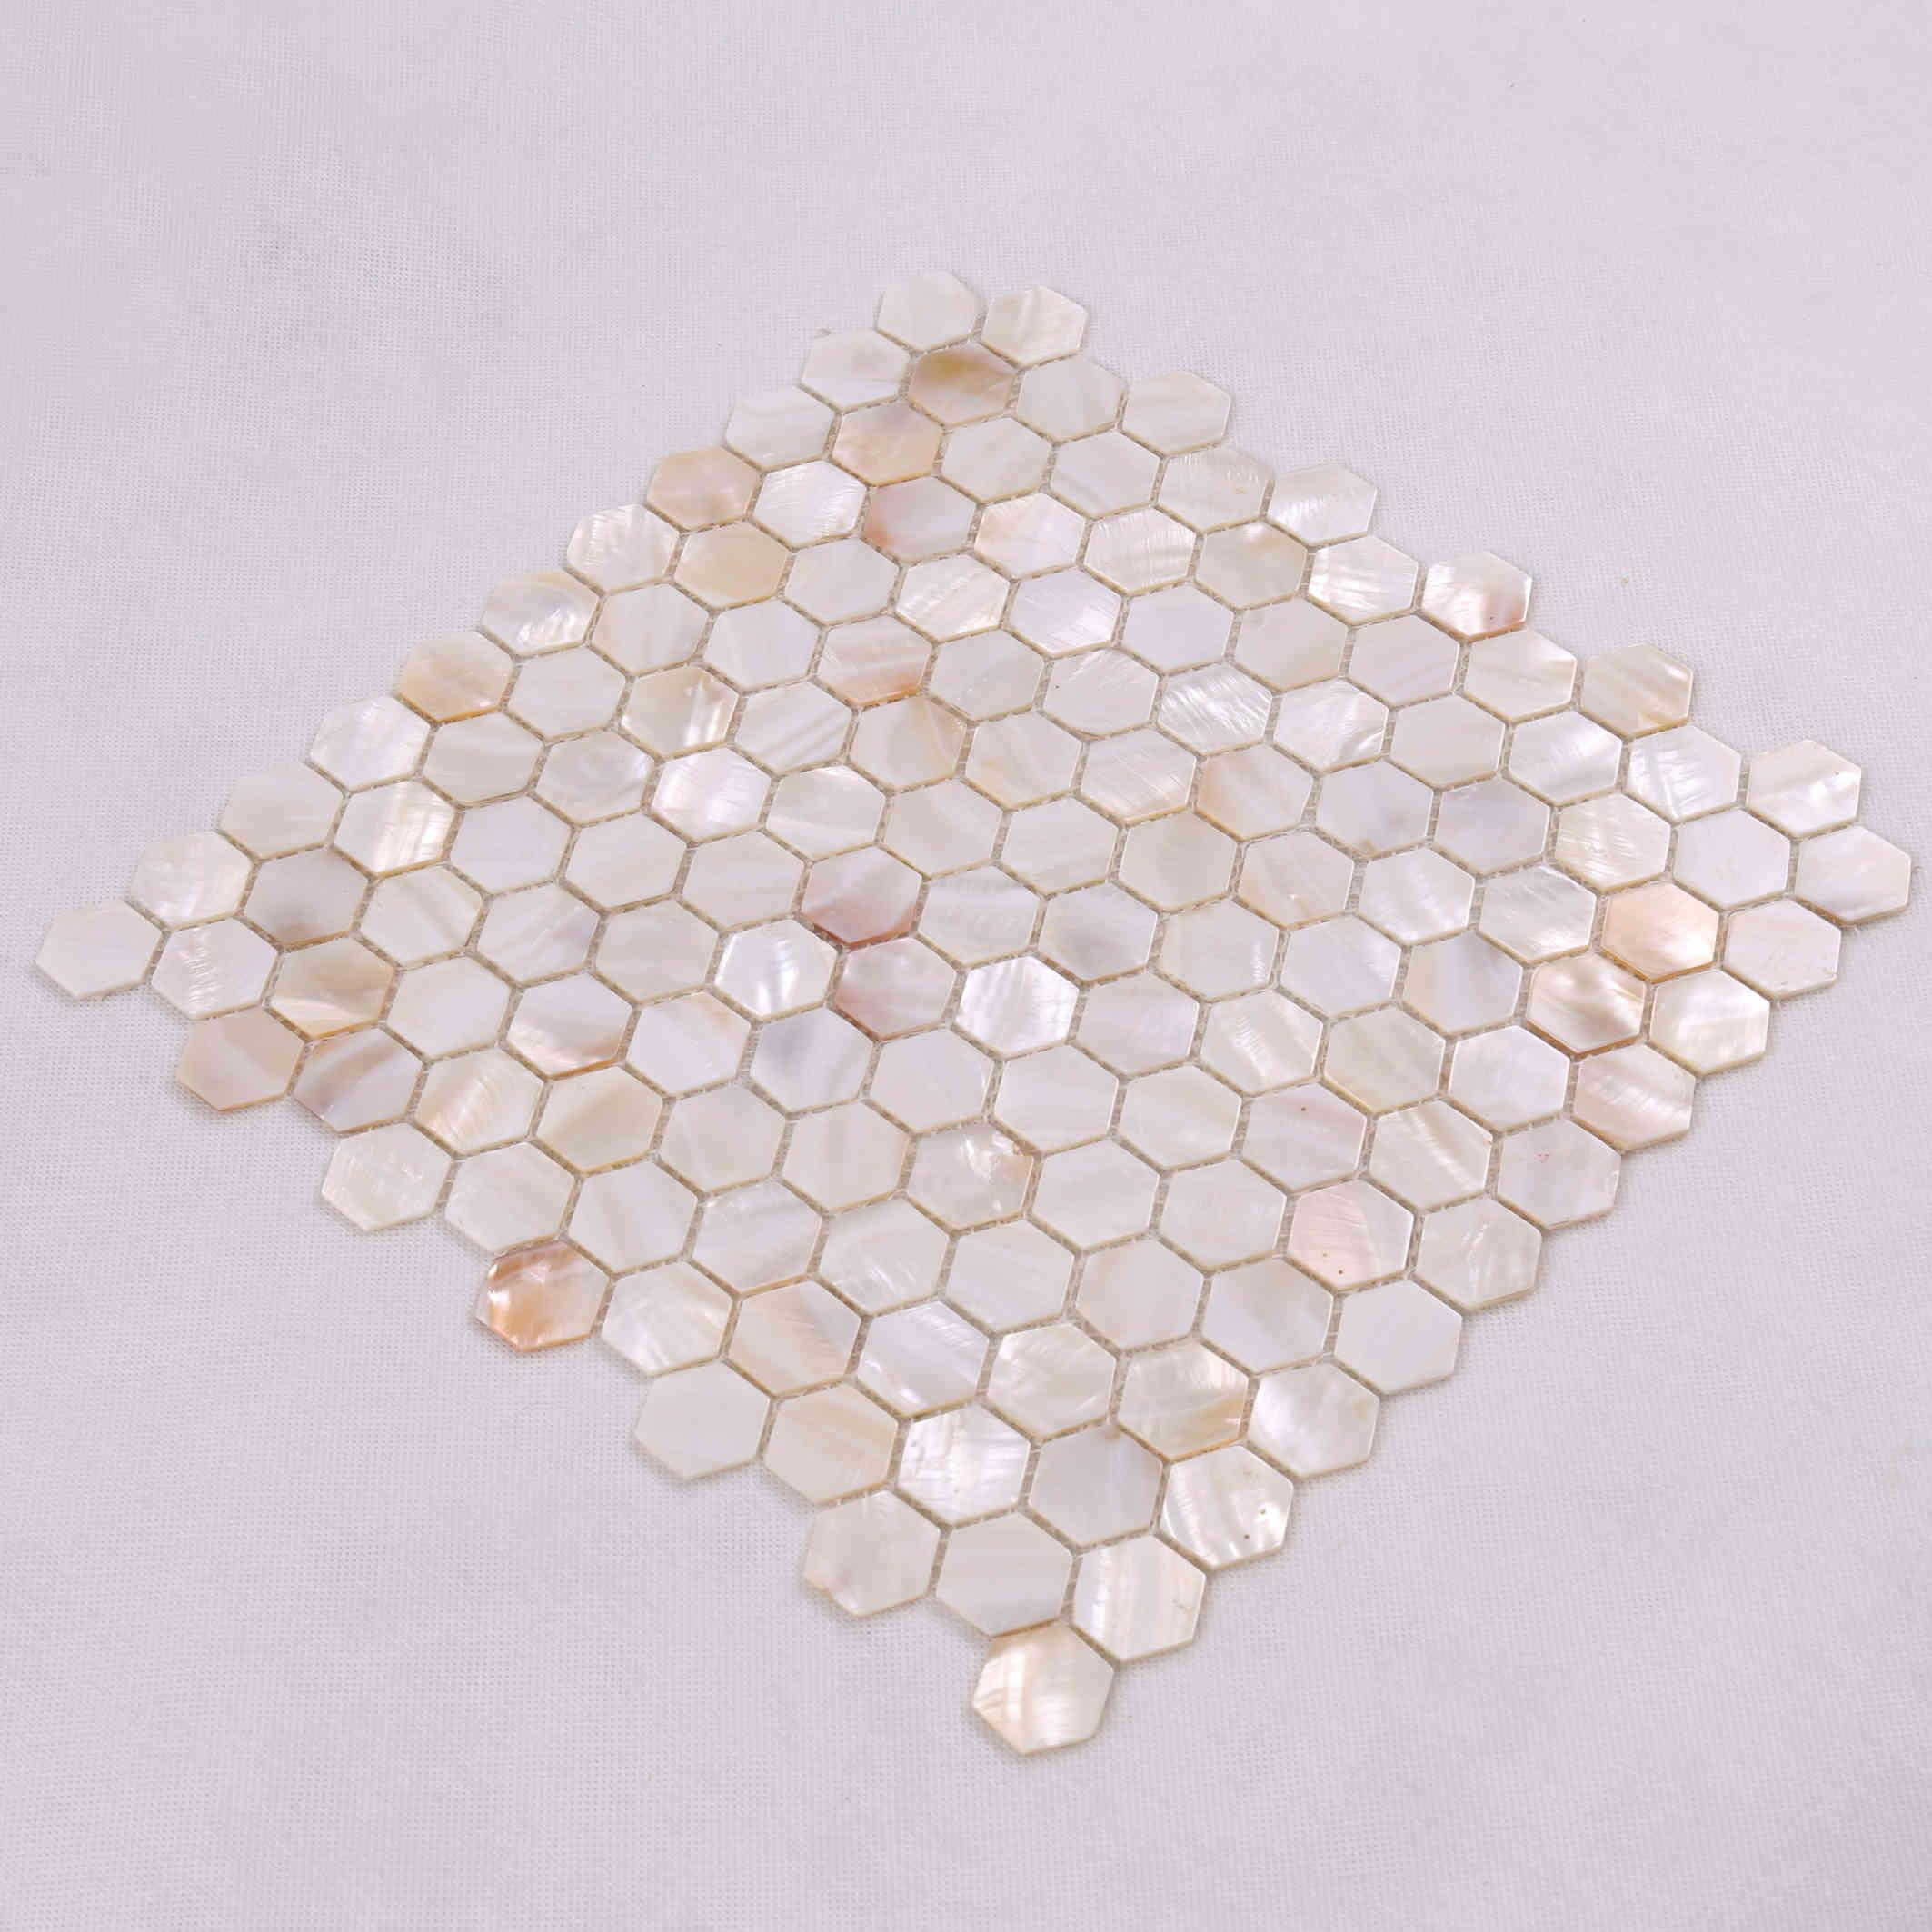 Heng Xing High-quality shell mosaic Suppliers-3